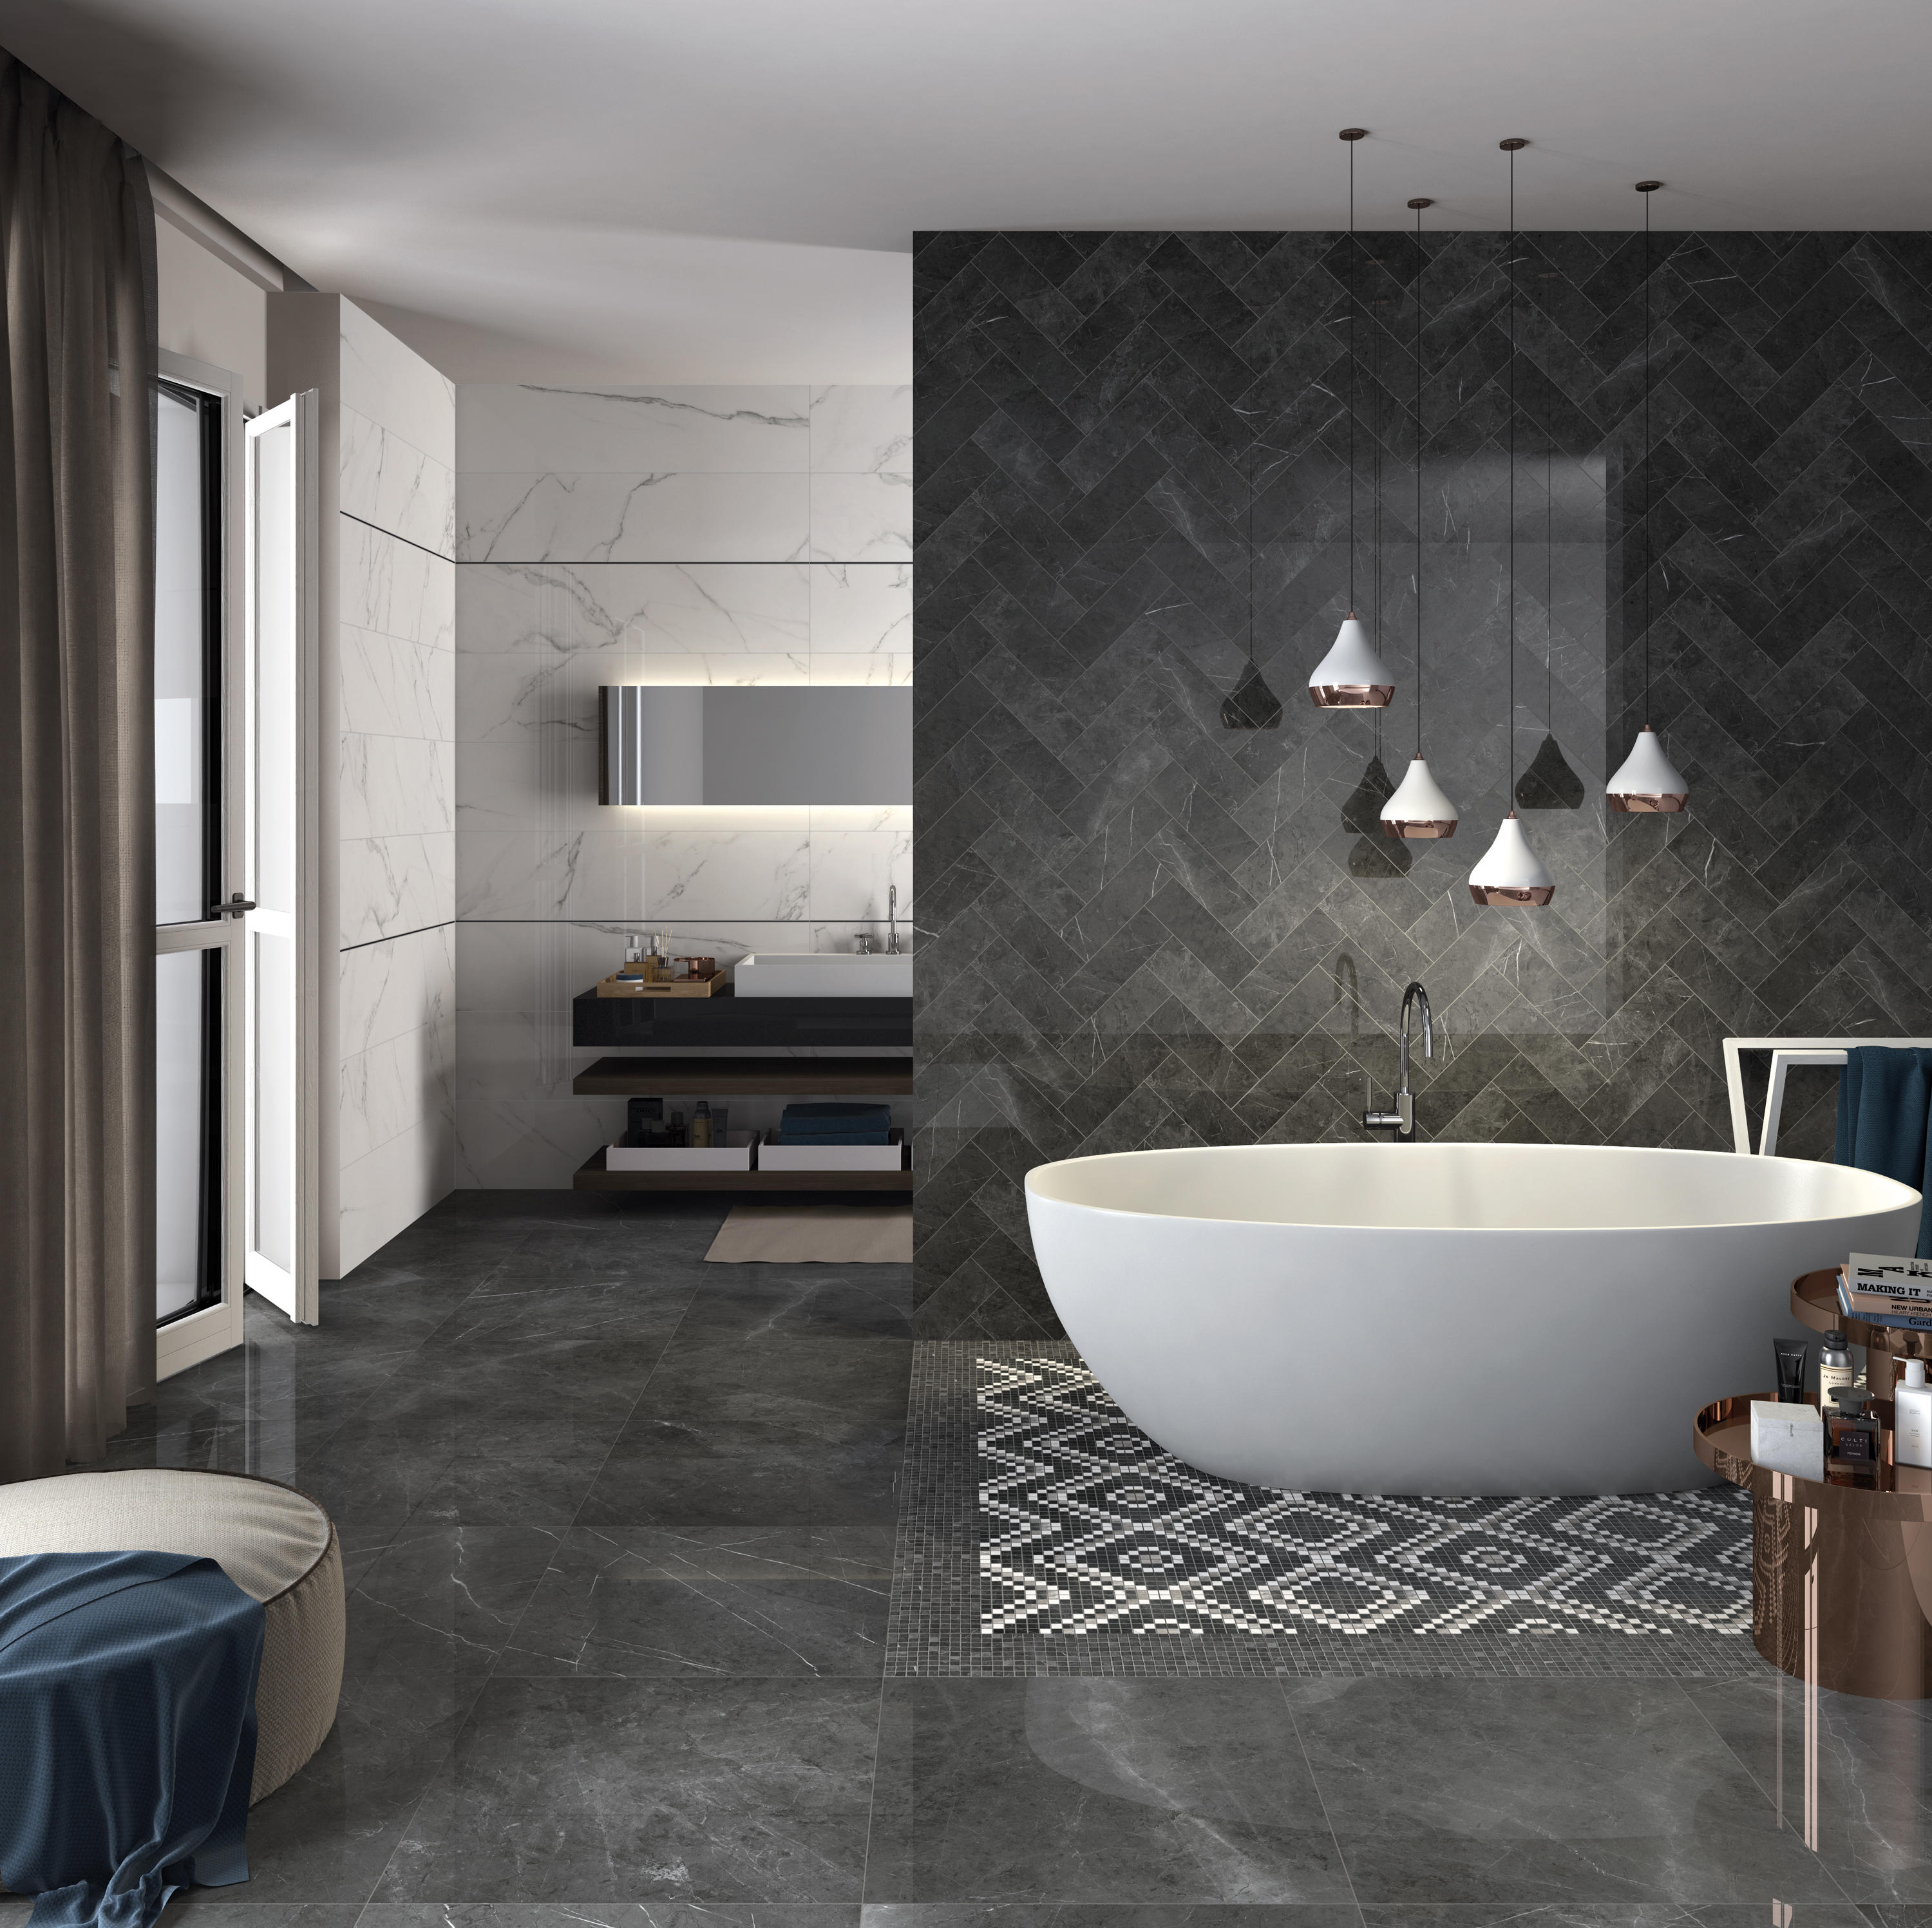 Sensi arabesque silver floor tiles from abk group architonic ambient images dailygadgetfo Choice Image